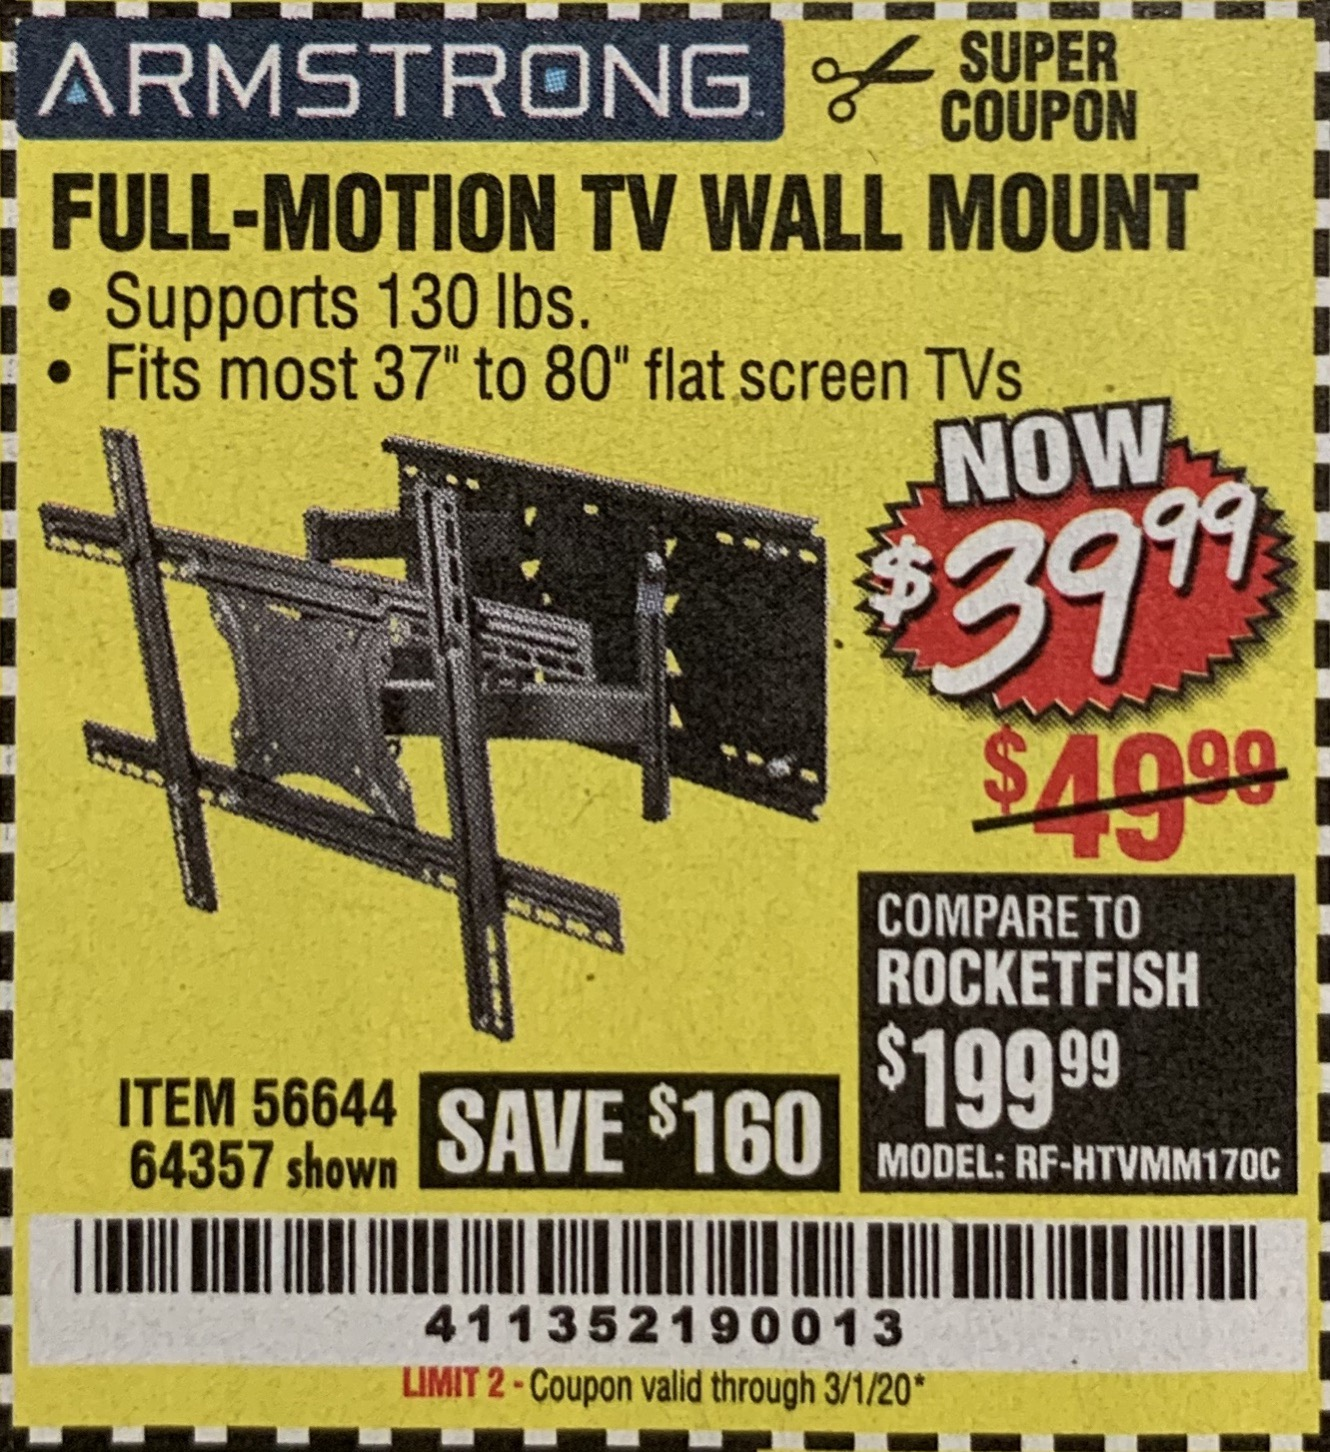 Harbor Freight FULL-MOTION TV WALL MOUNT coupon